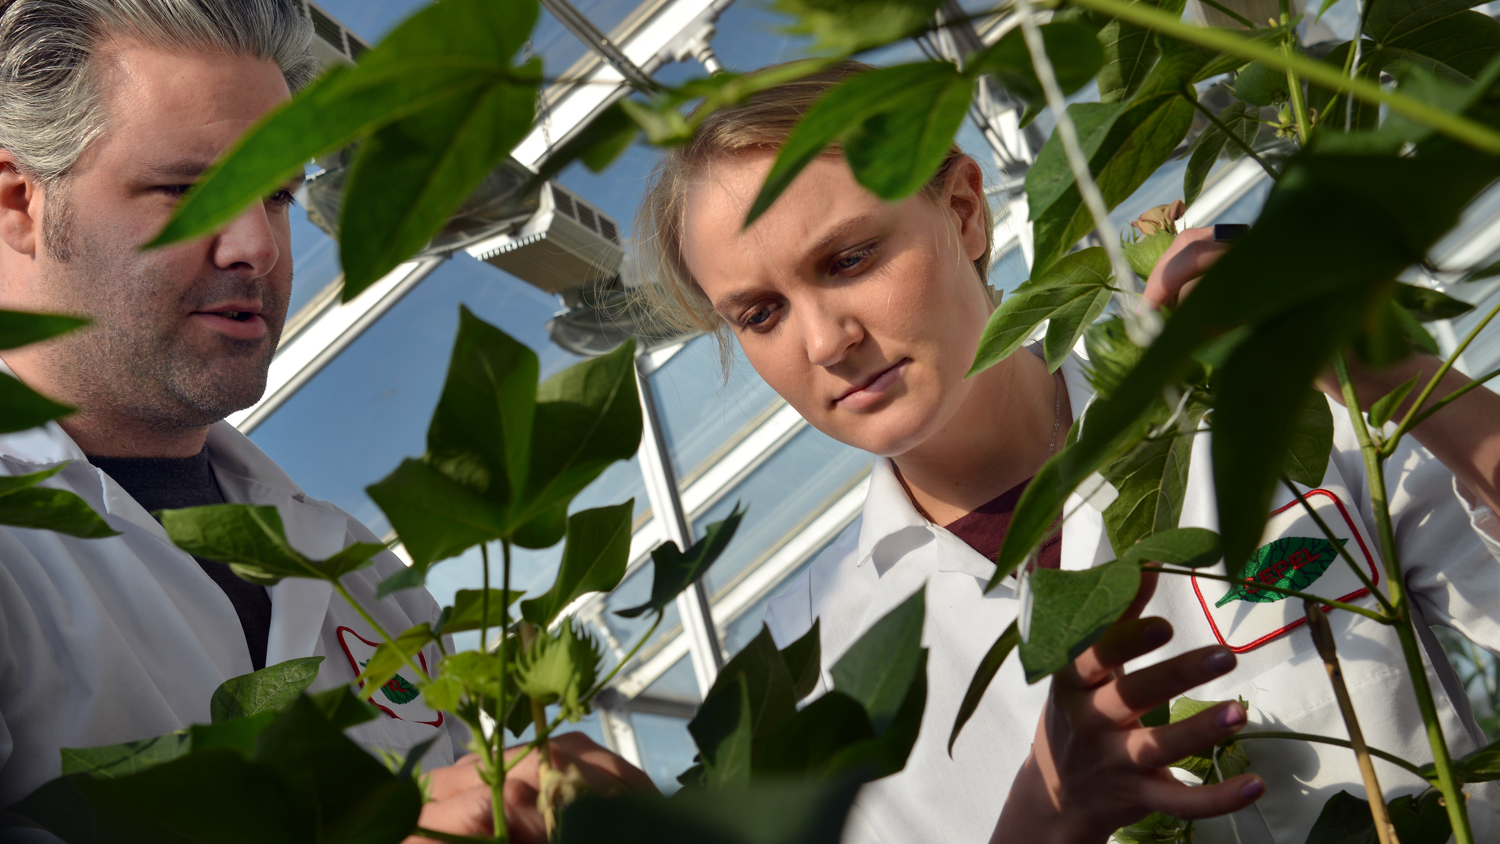 NCState researchers examine plants in a greenhouse.